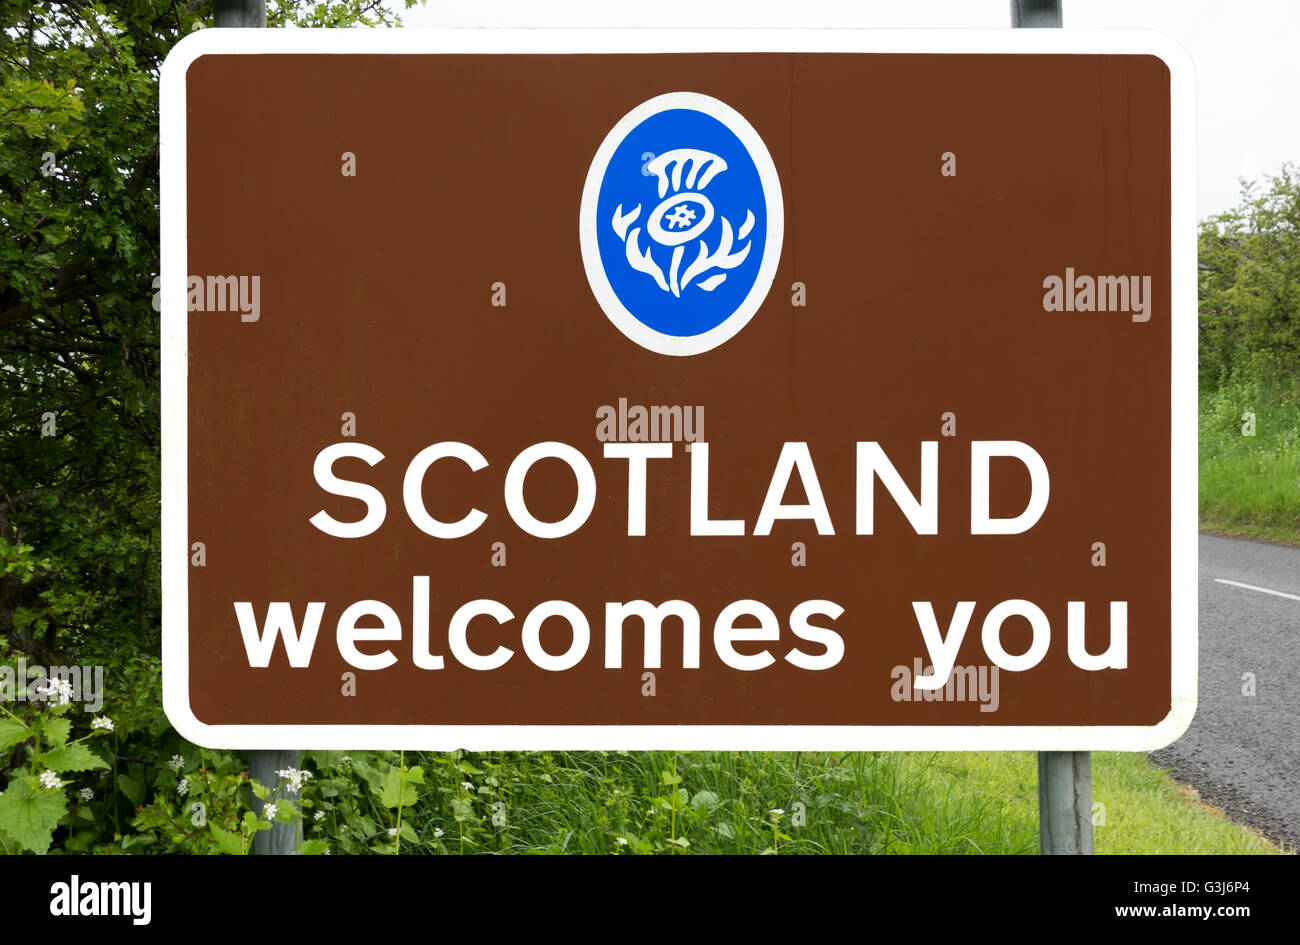 Welcome to Scotland road sign, Scottish Borders, Scotland, UK - Stock Image